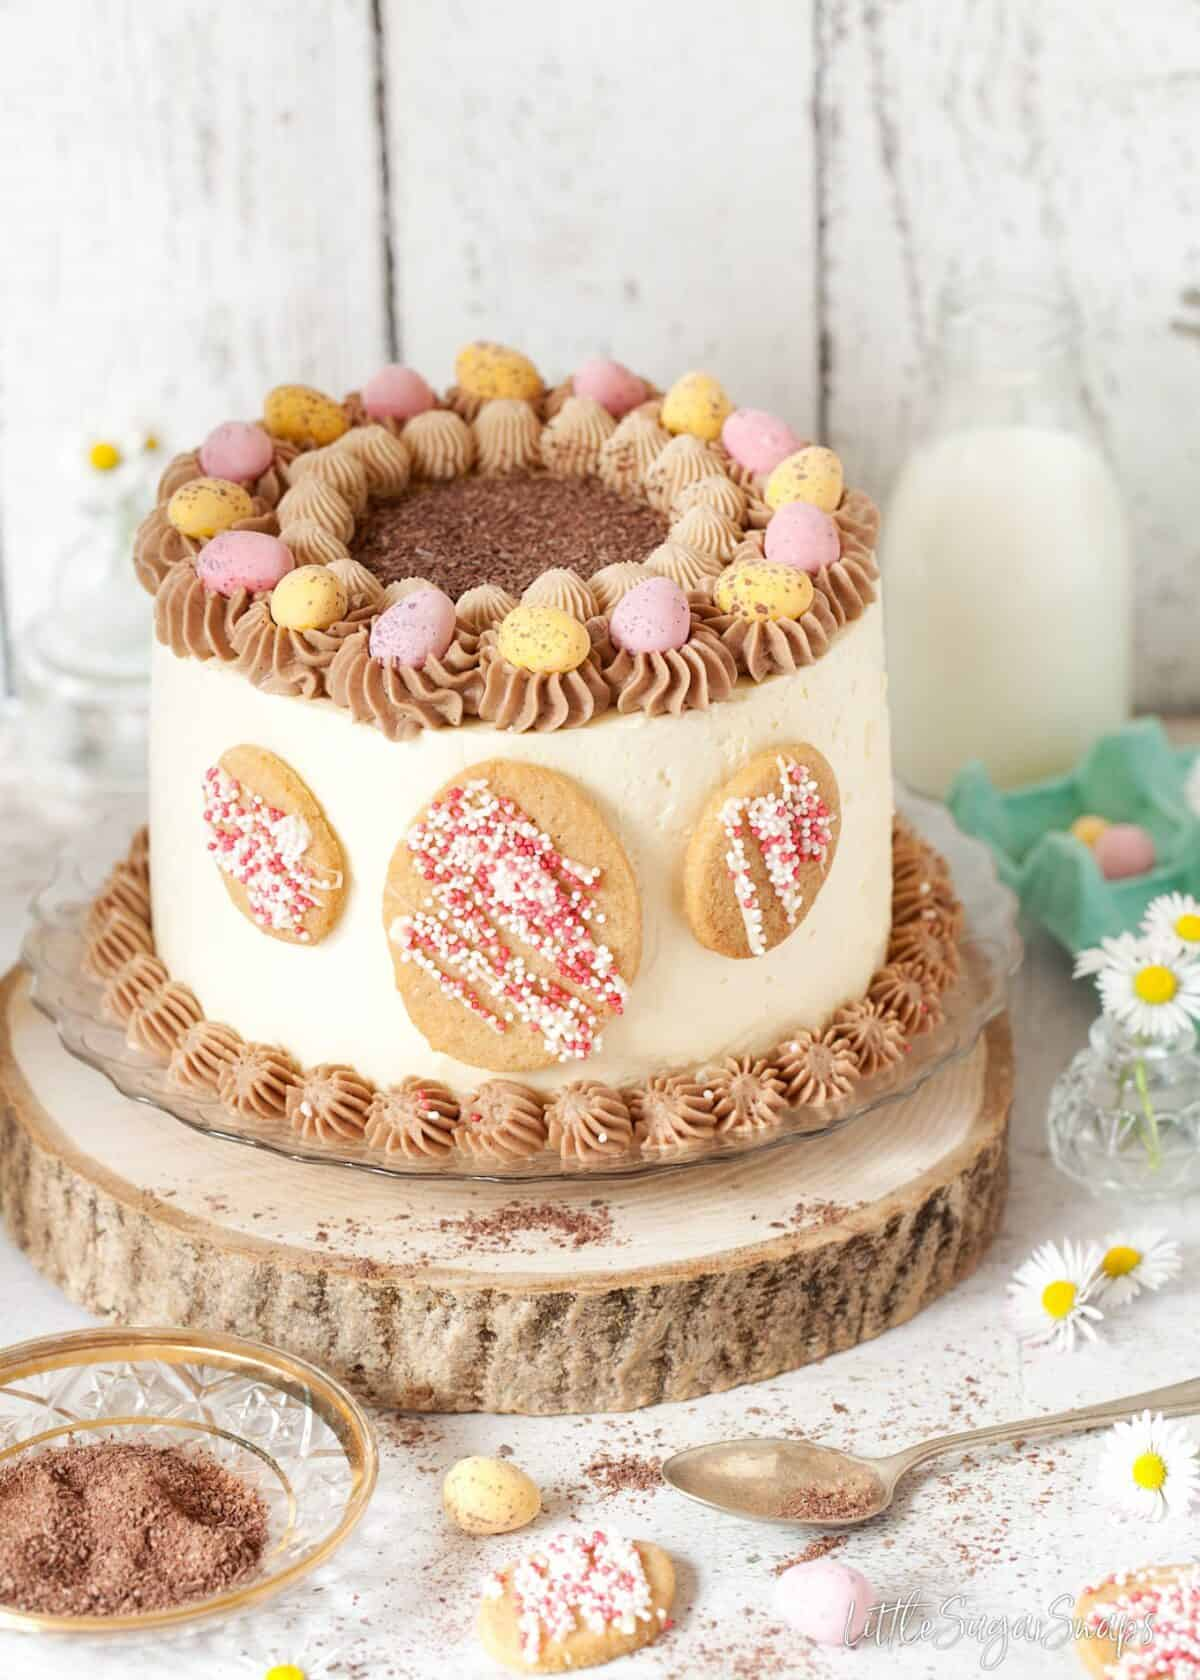 Layer cake decorated with mini eggs and egg shaped cookies.